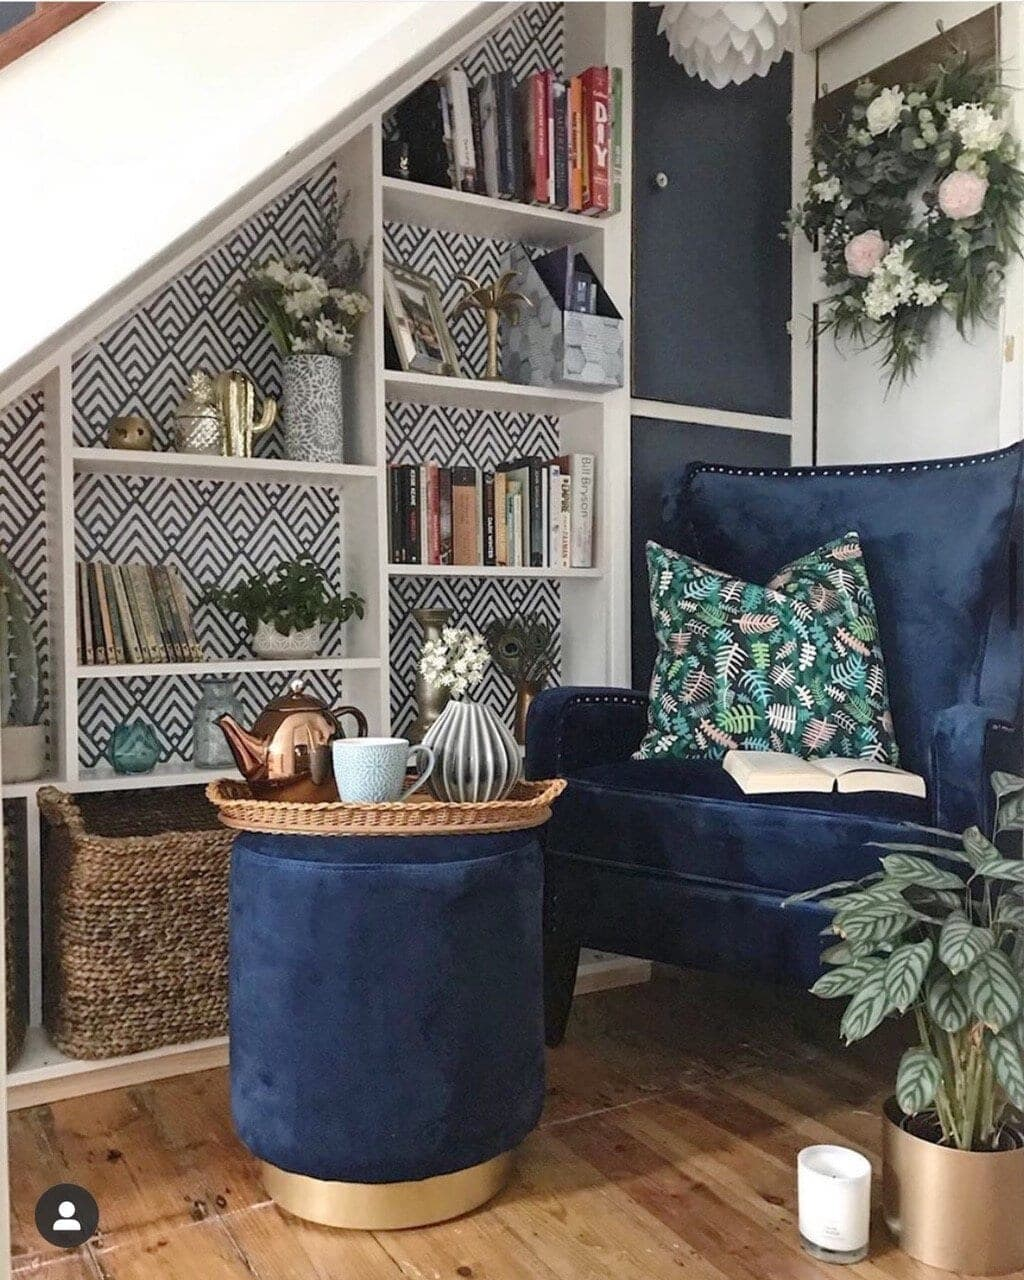 Adding this geometric wallpaper to the back of the shelves and a patterned cushion has broken up the block of colour and transformed this space.